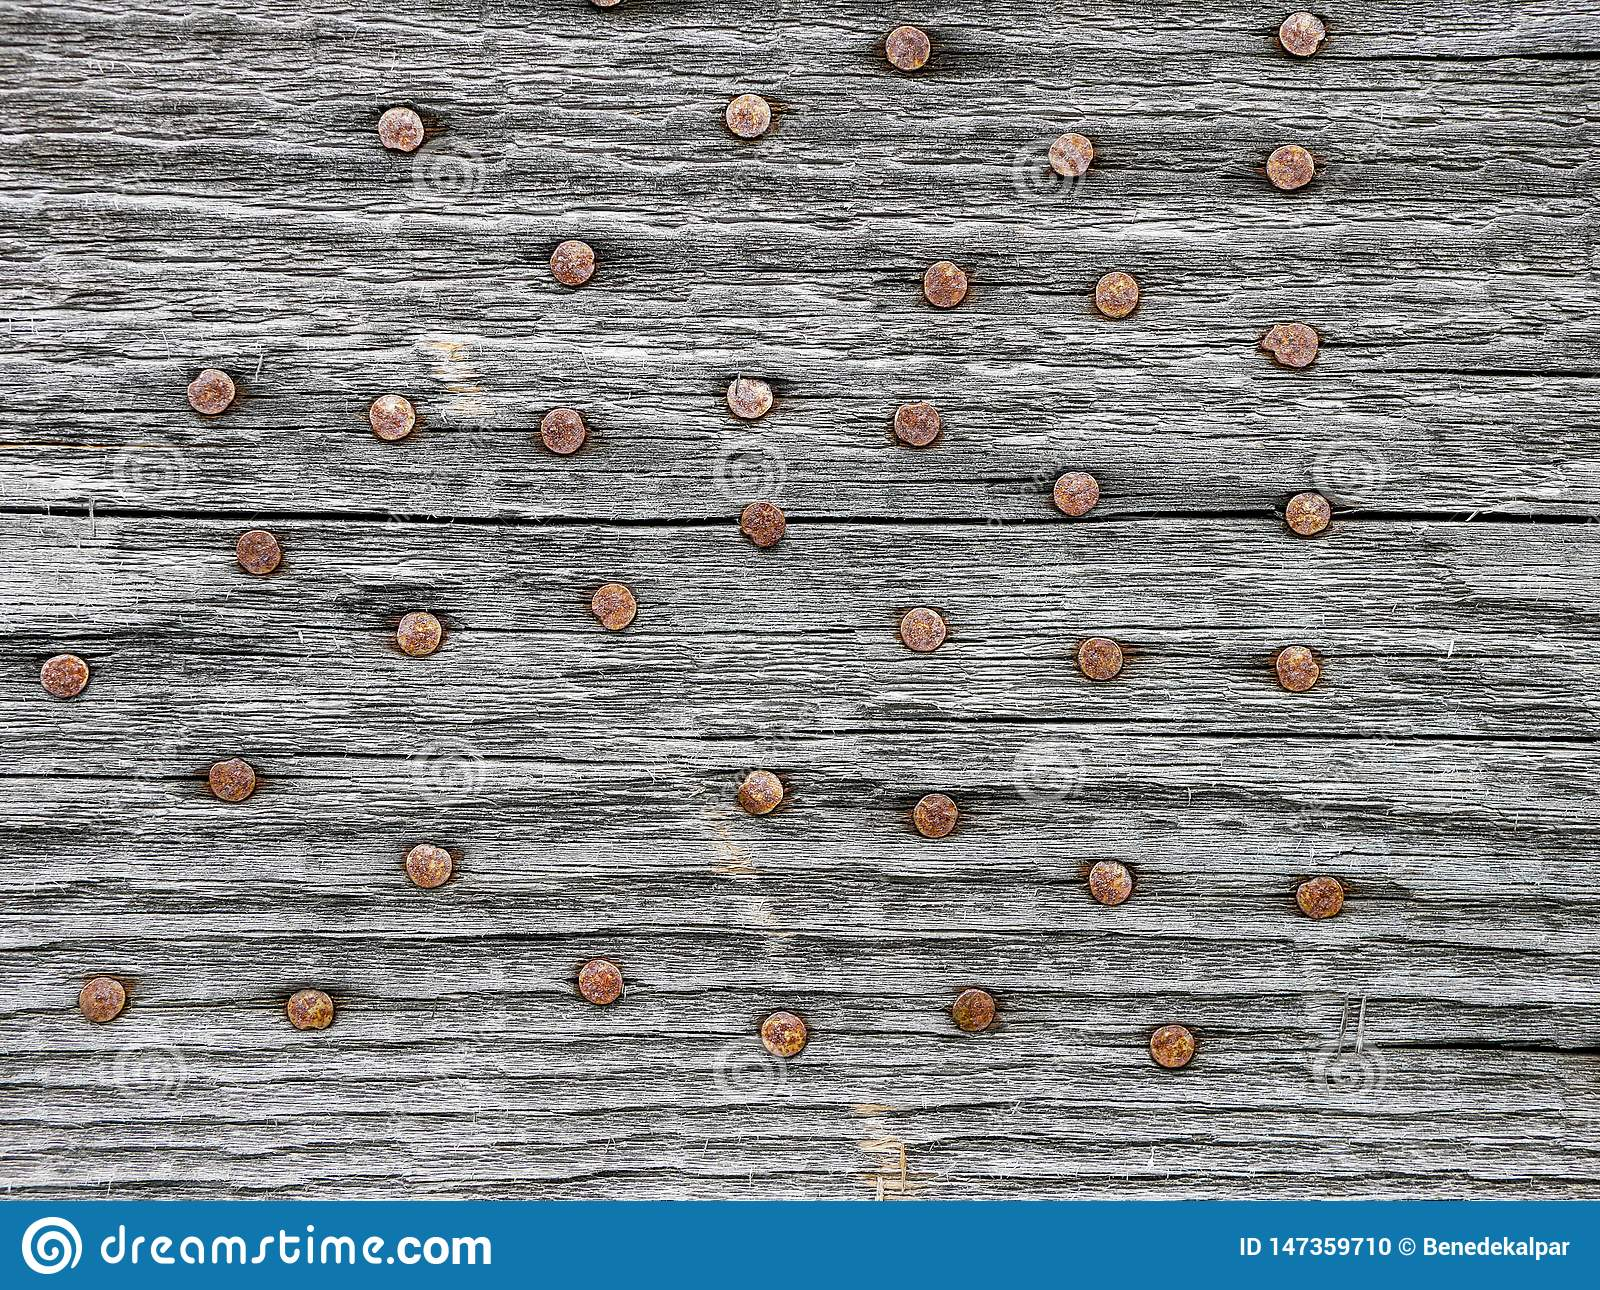 Rusty nails in aged pine wood board close up shot